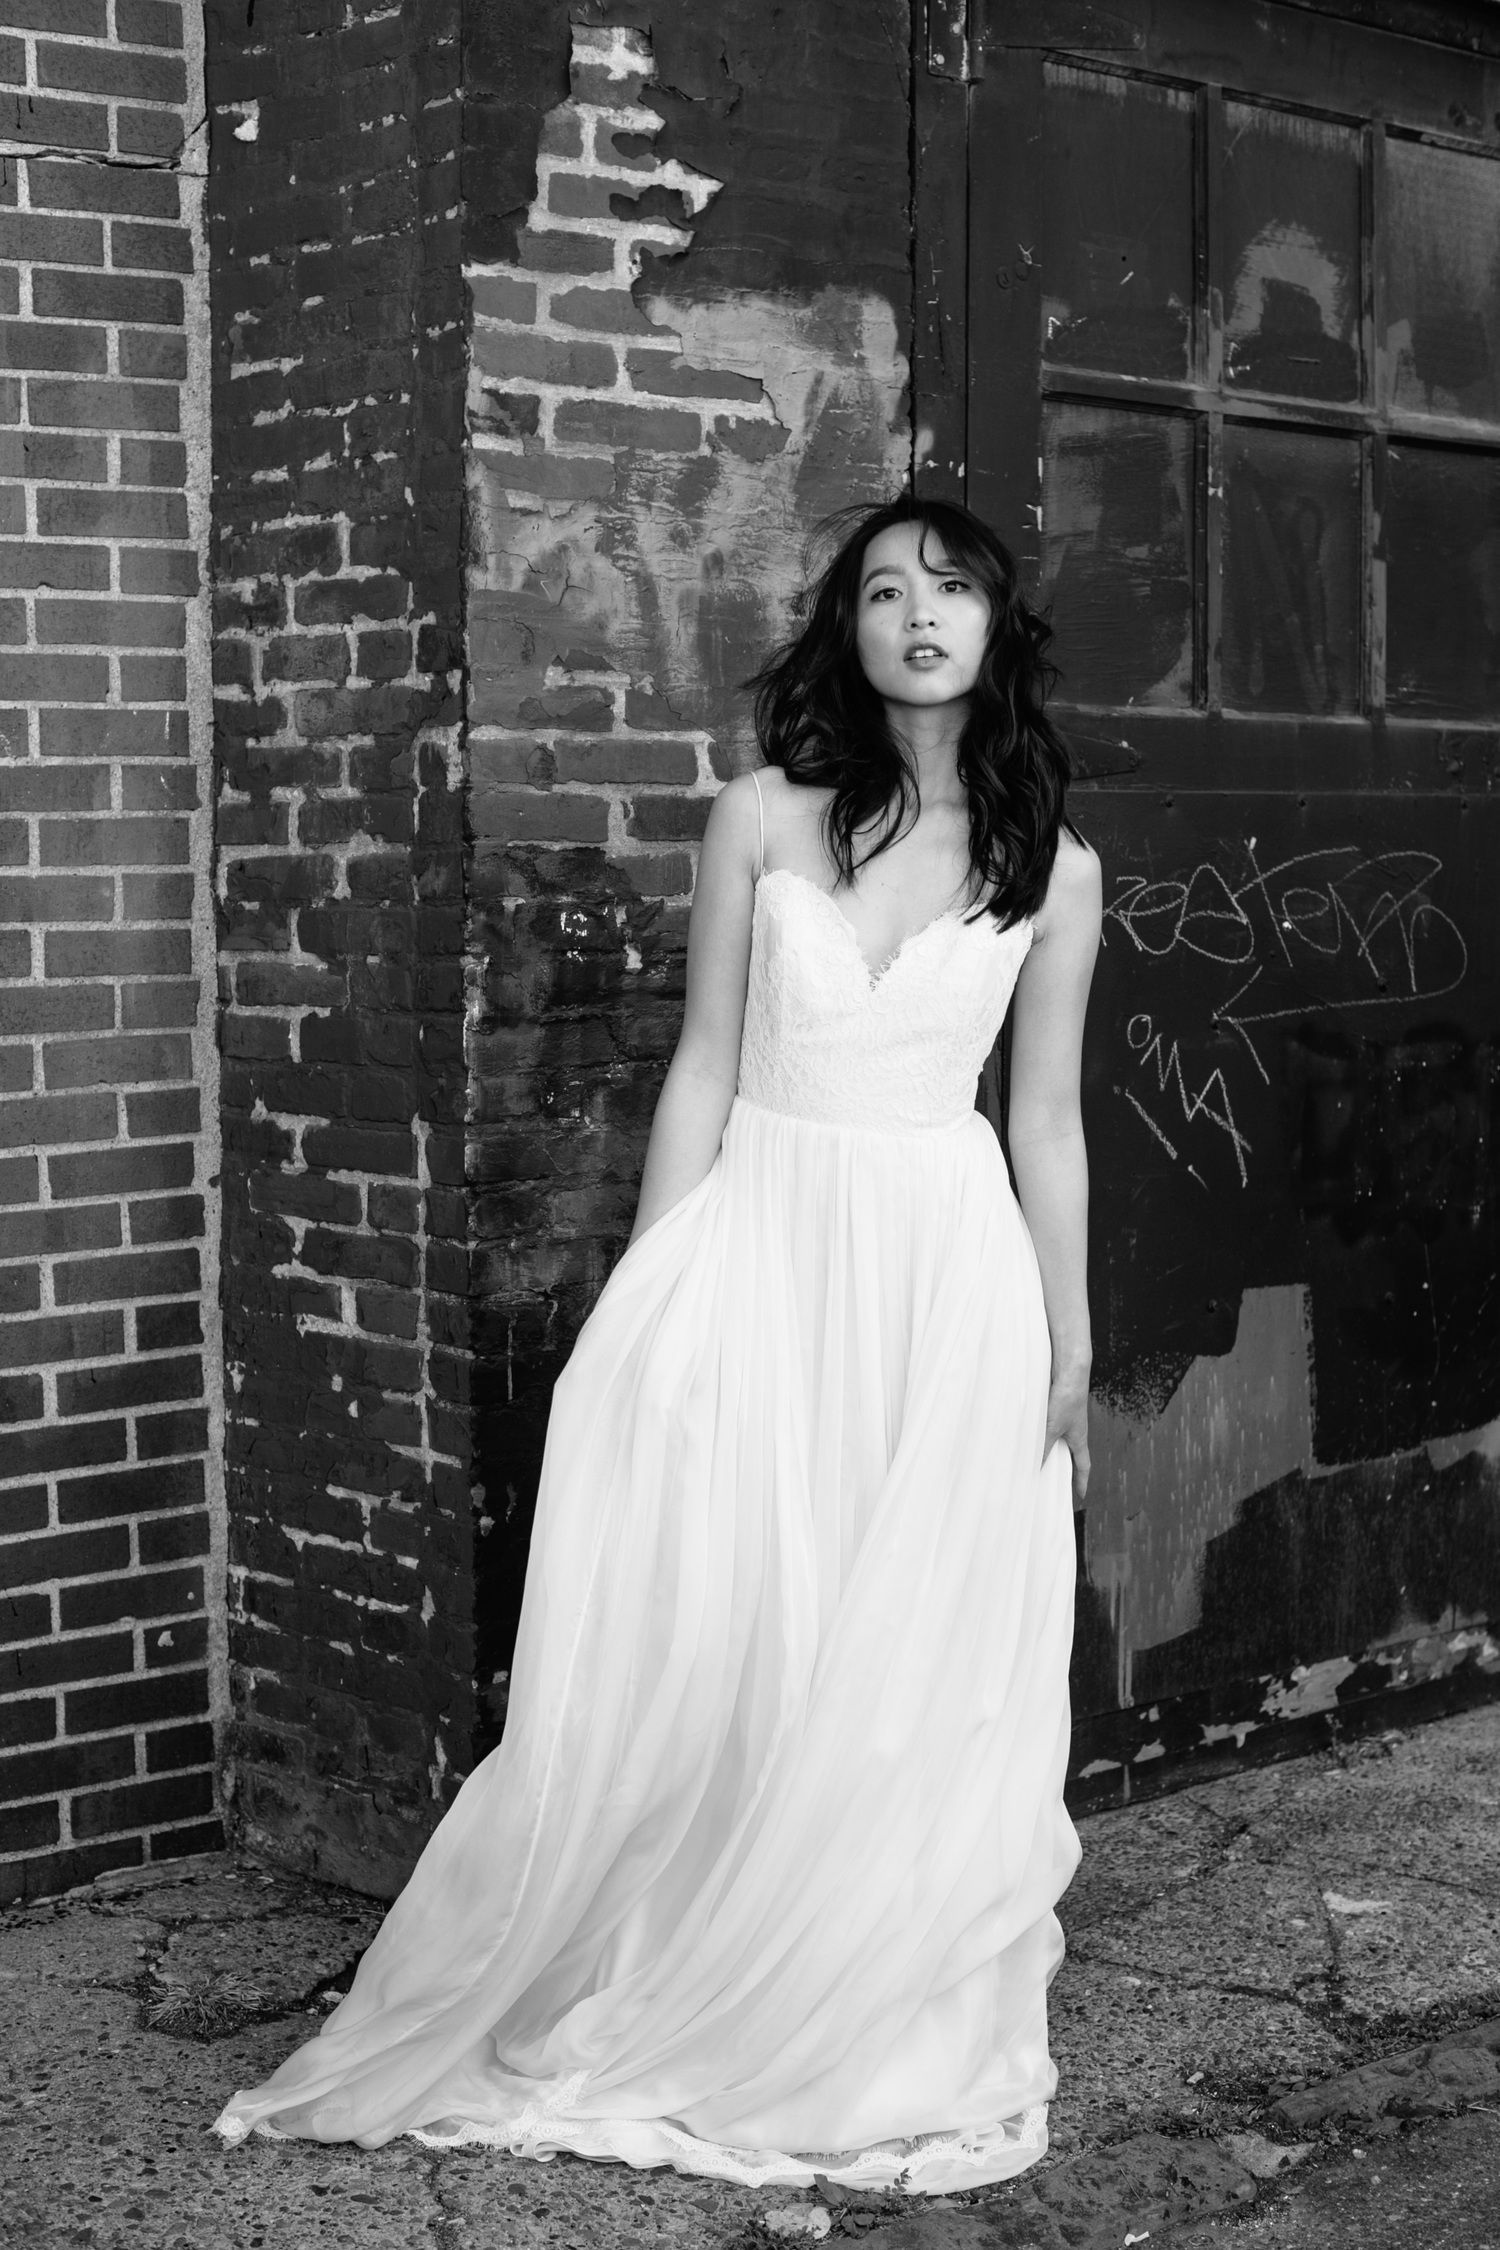 Airbrushed wedding dress  Pretty On ArrivalBlog Photography by Tricia Farley Model Ameeda Lor